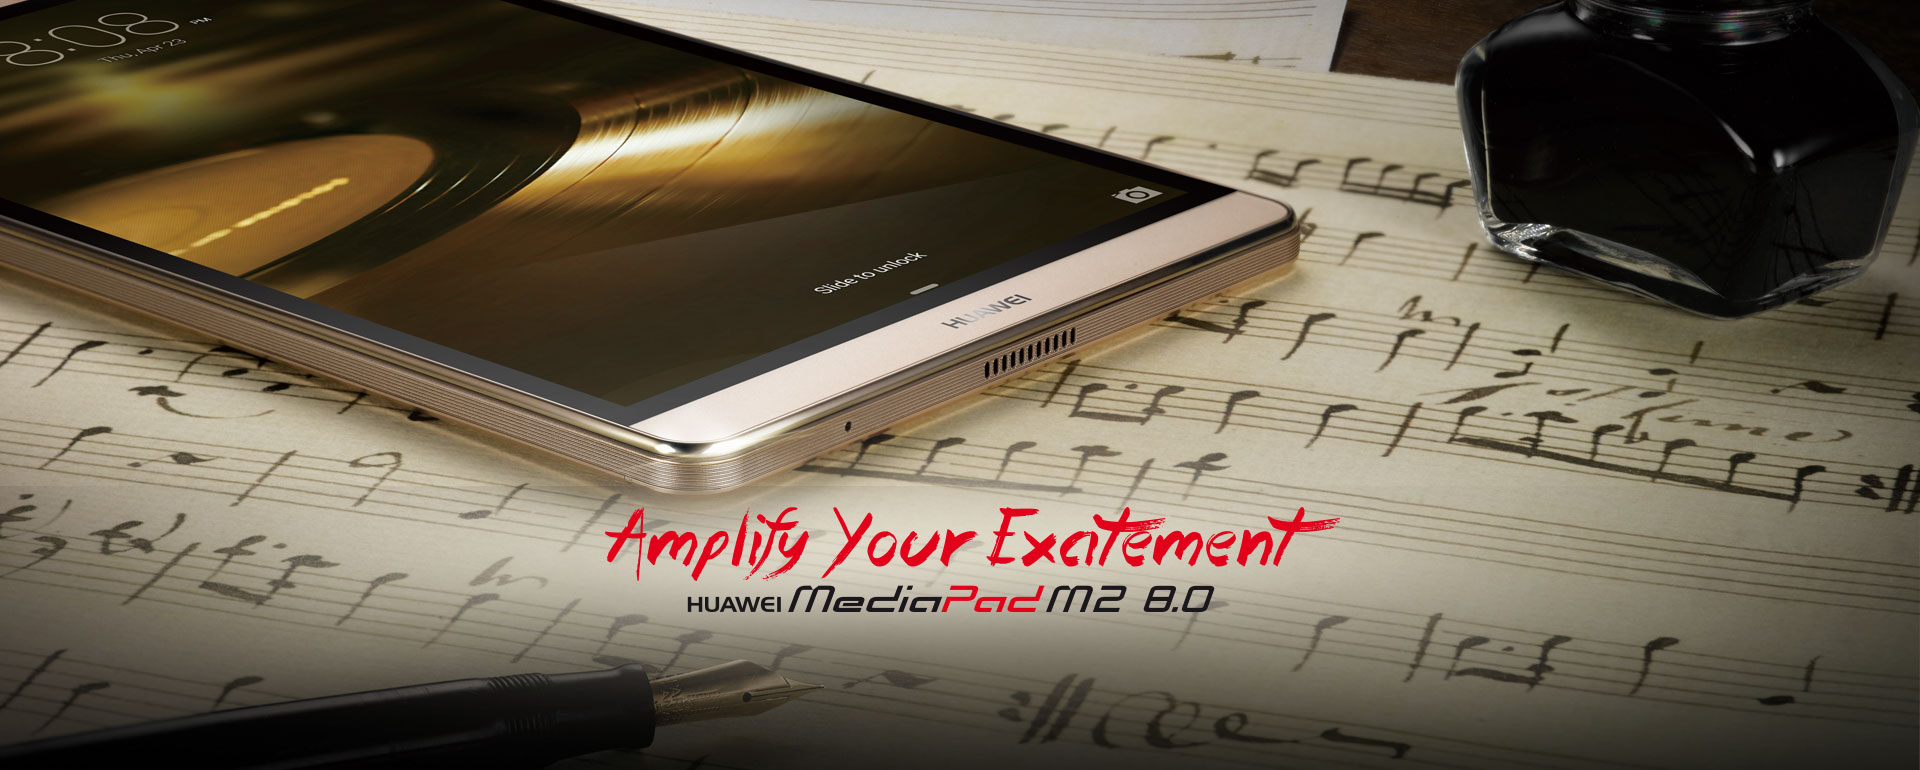 Amplify Your Excitement - HUAWEI MediaPad M2 8.0